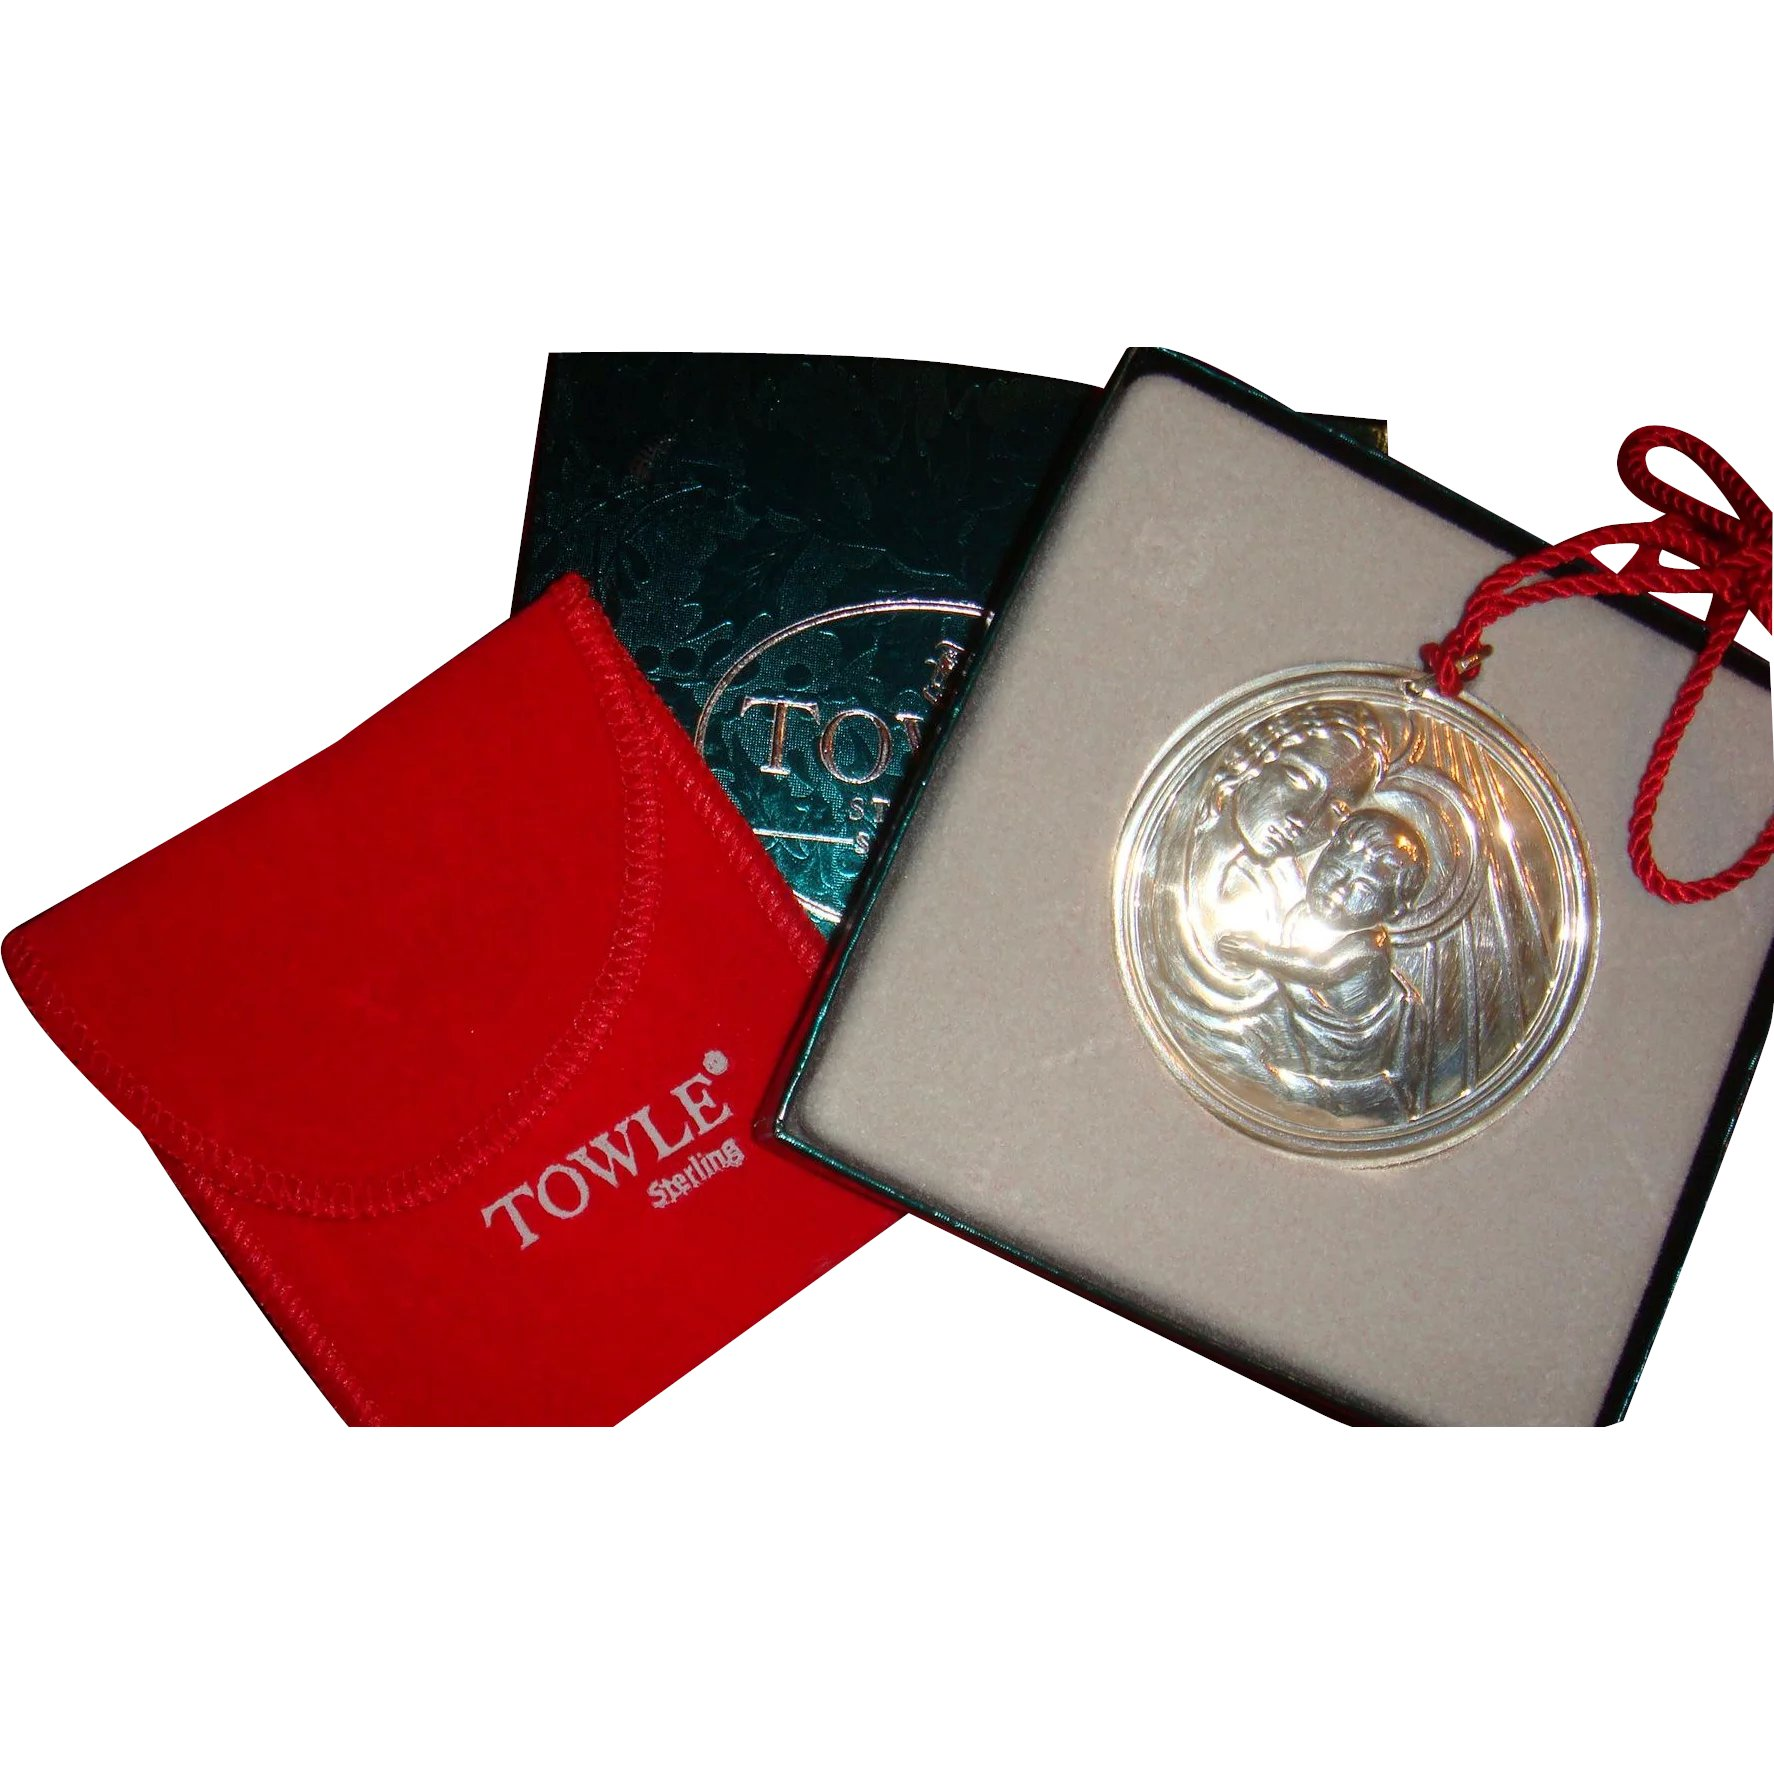 1993 Towle Sterling Silver Boxed Christmas Ornament ...